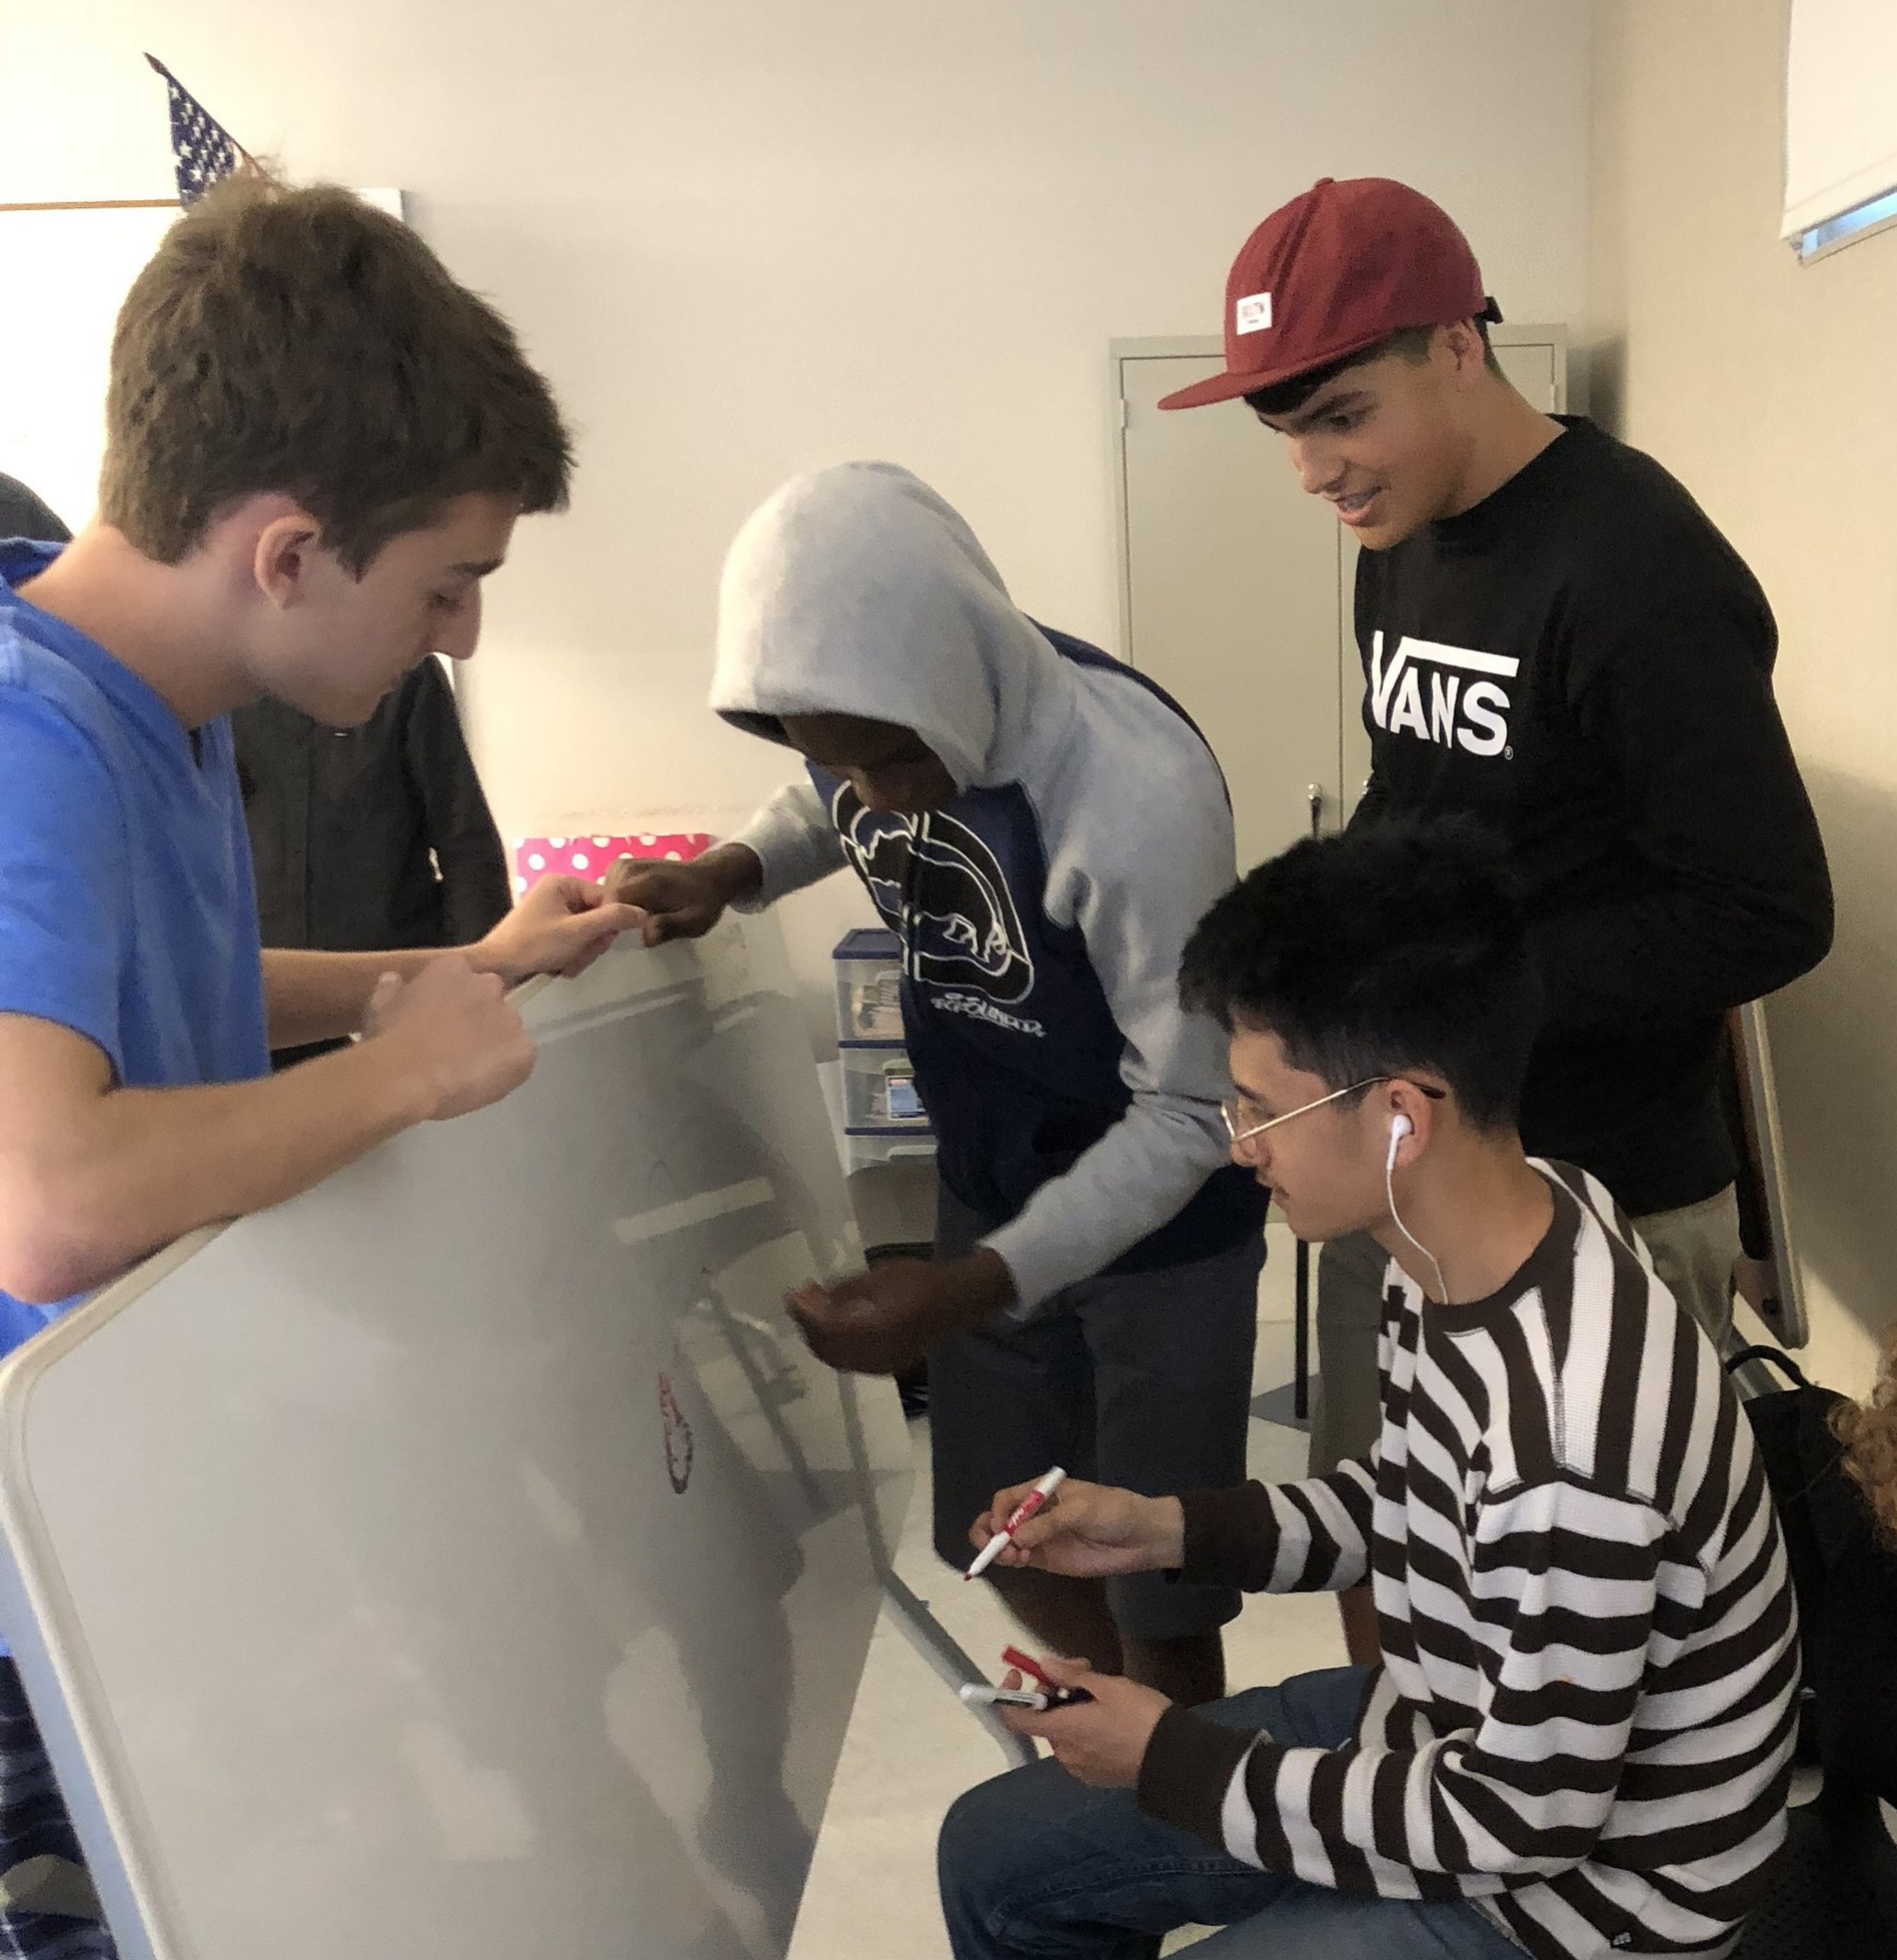 Students in a group writing on white board